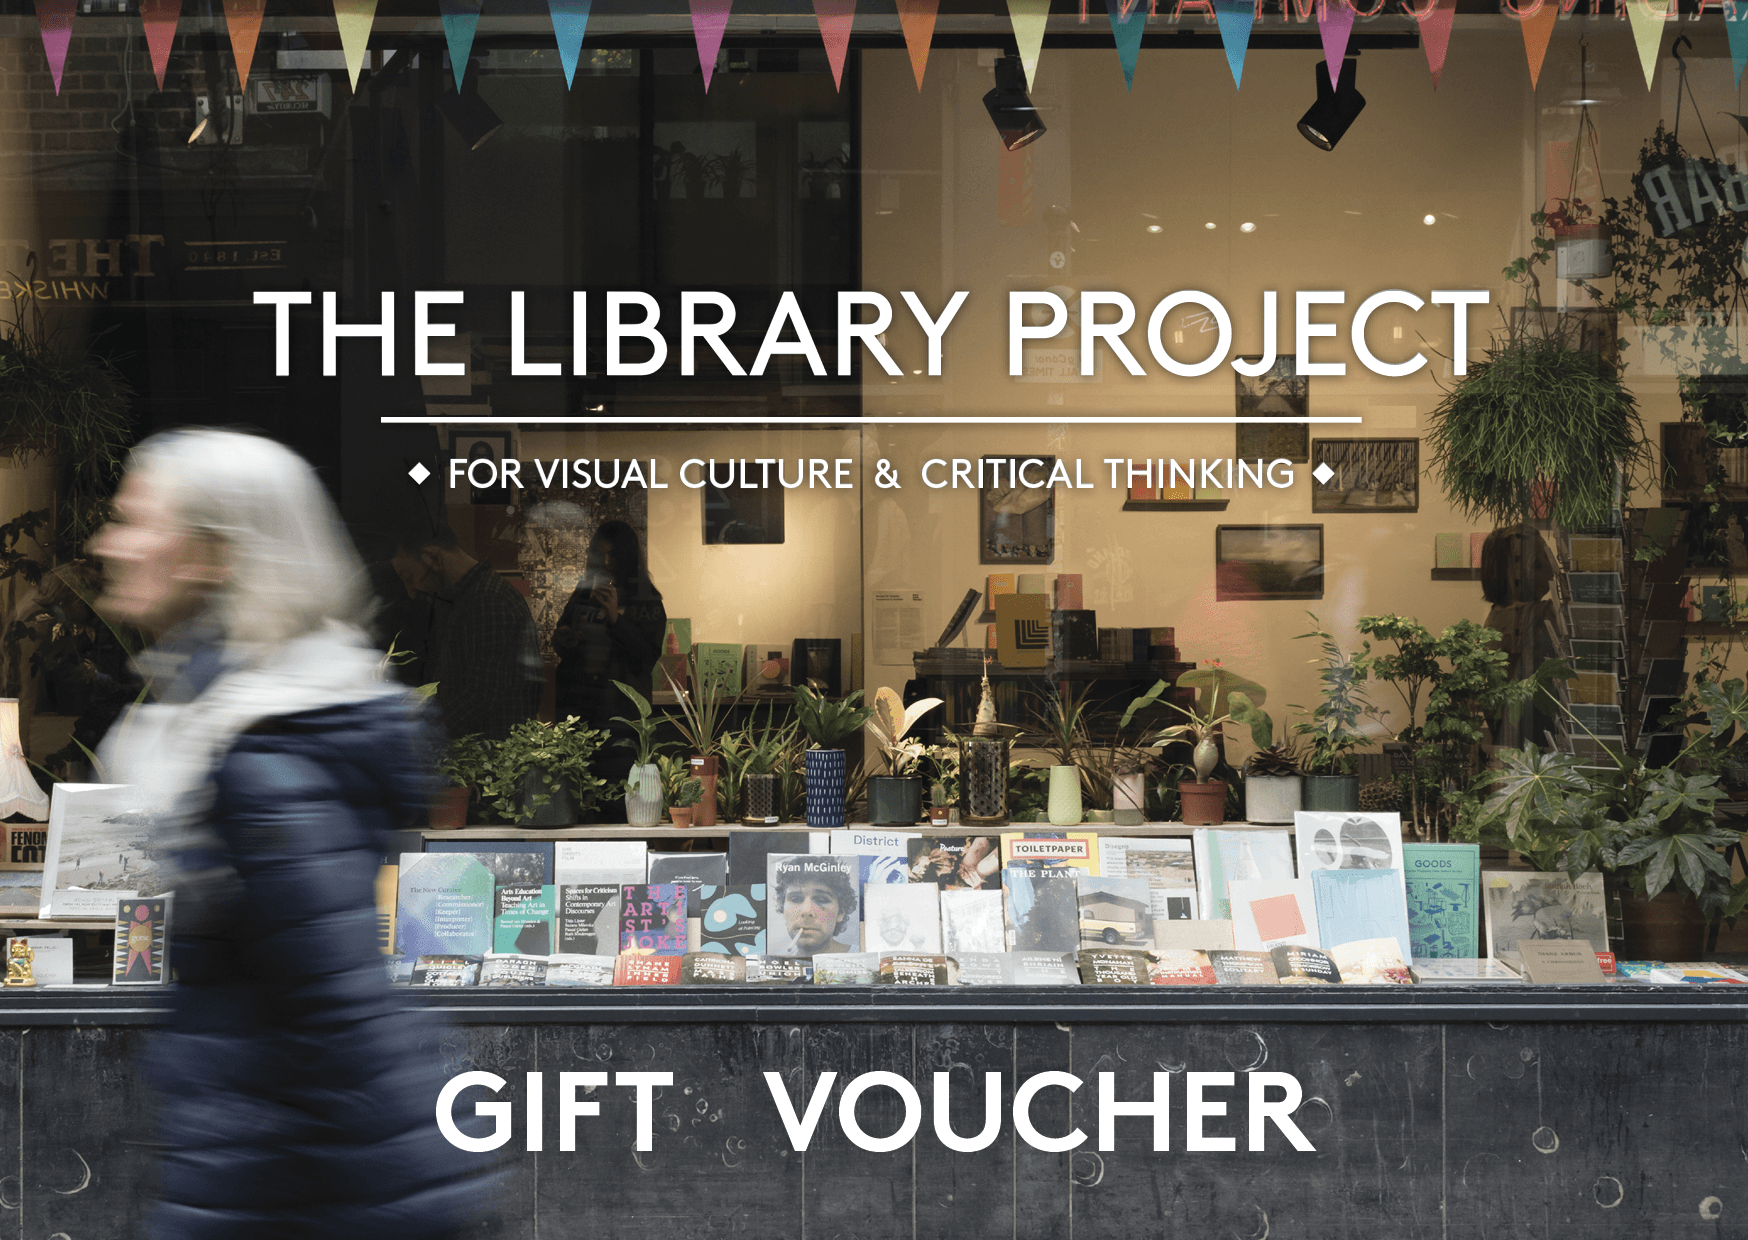 Gift Voucher - The Library Project - The Library Project